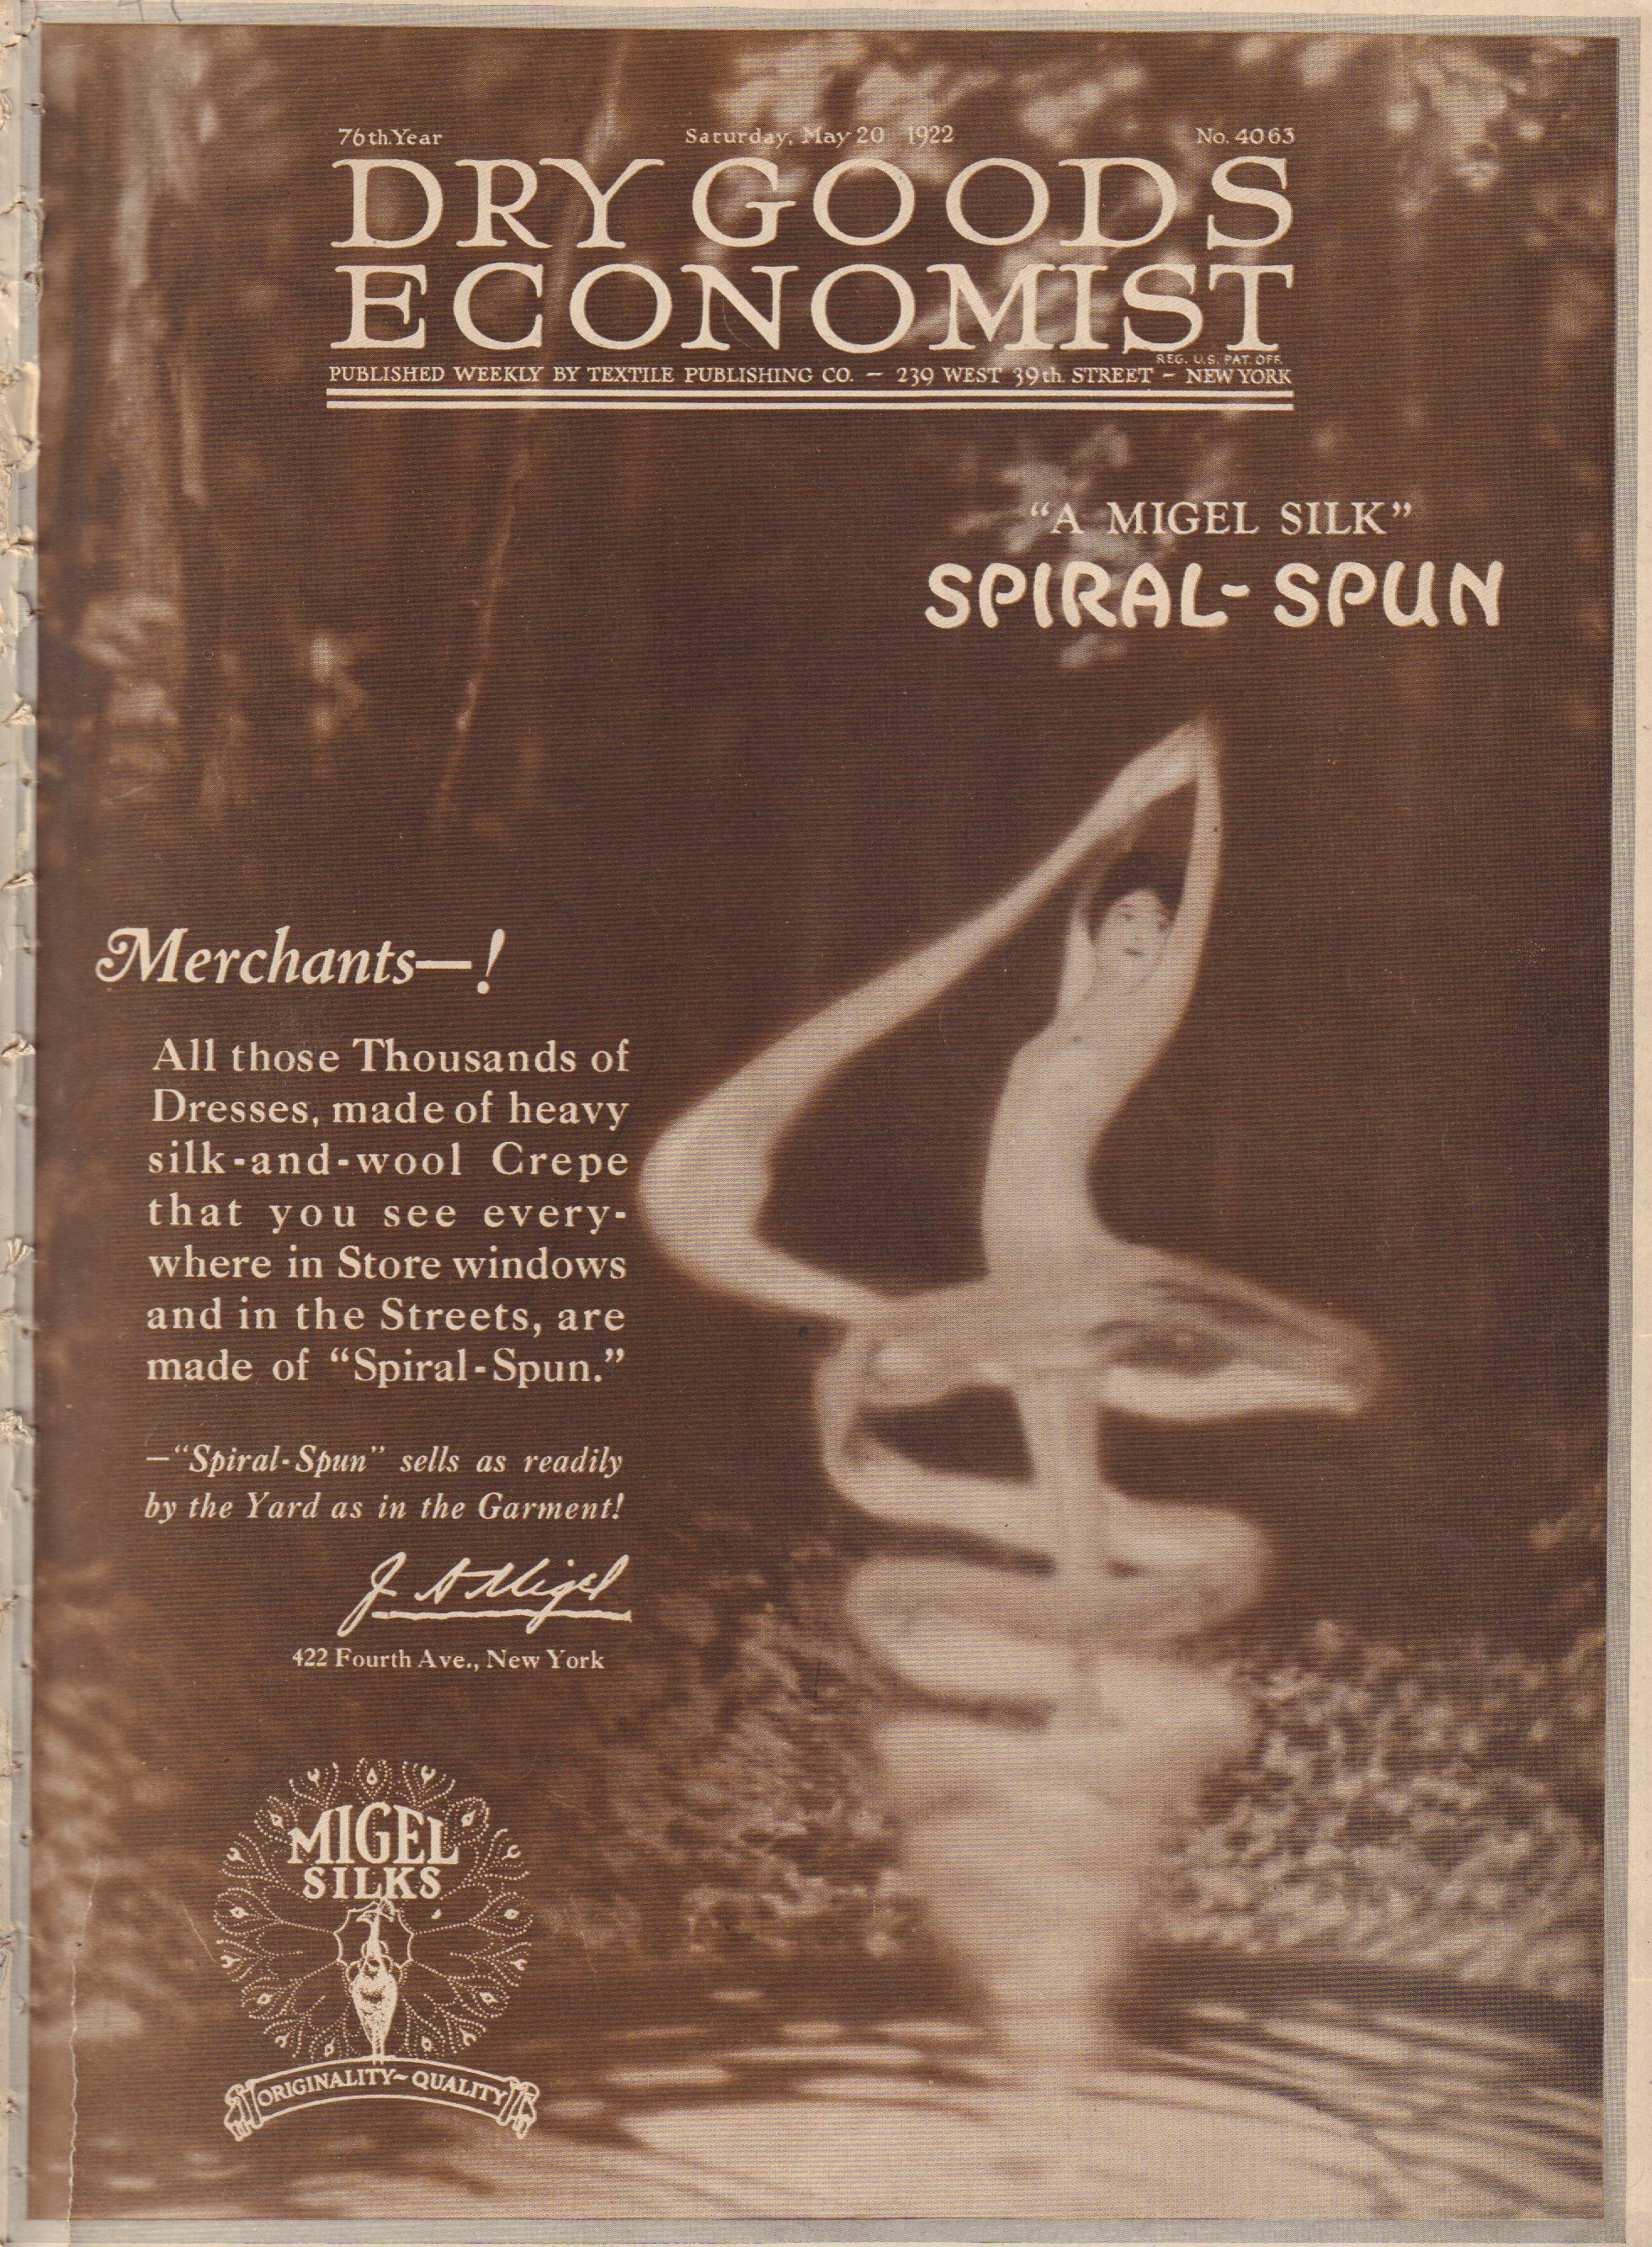 Image for Dry Goods Economist - Saturday May 20, 1922 - 76th Year, No. 4063